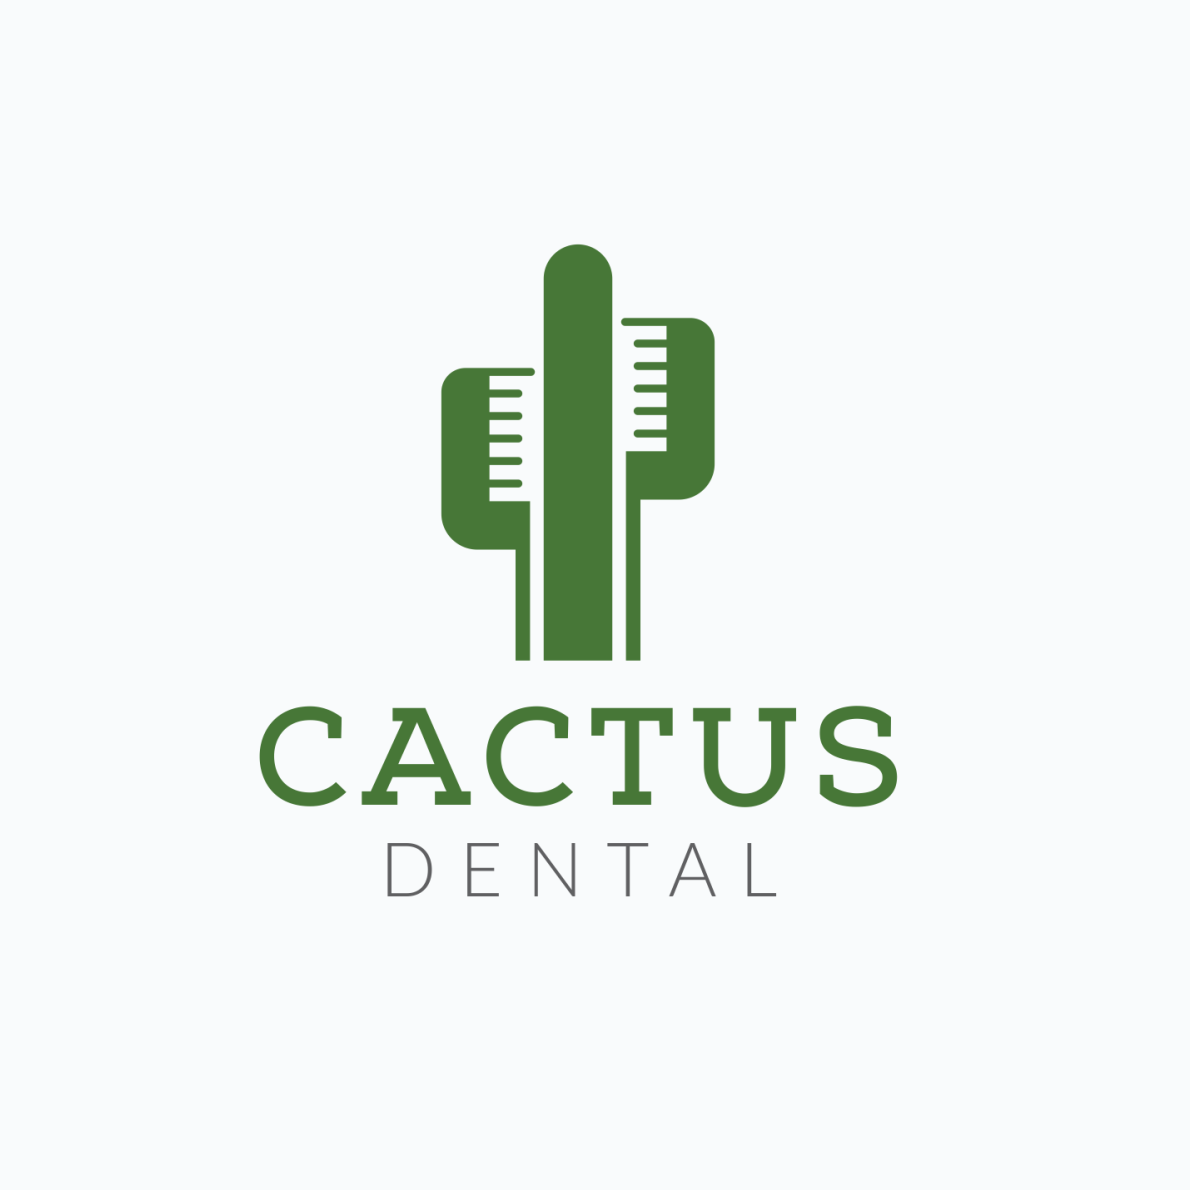 Original logo design for Cactus Dental